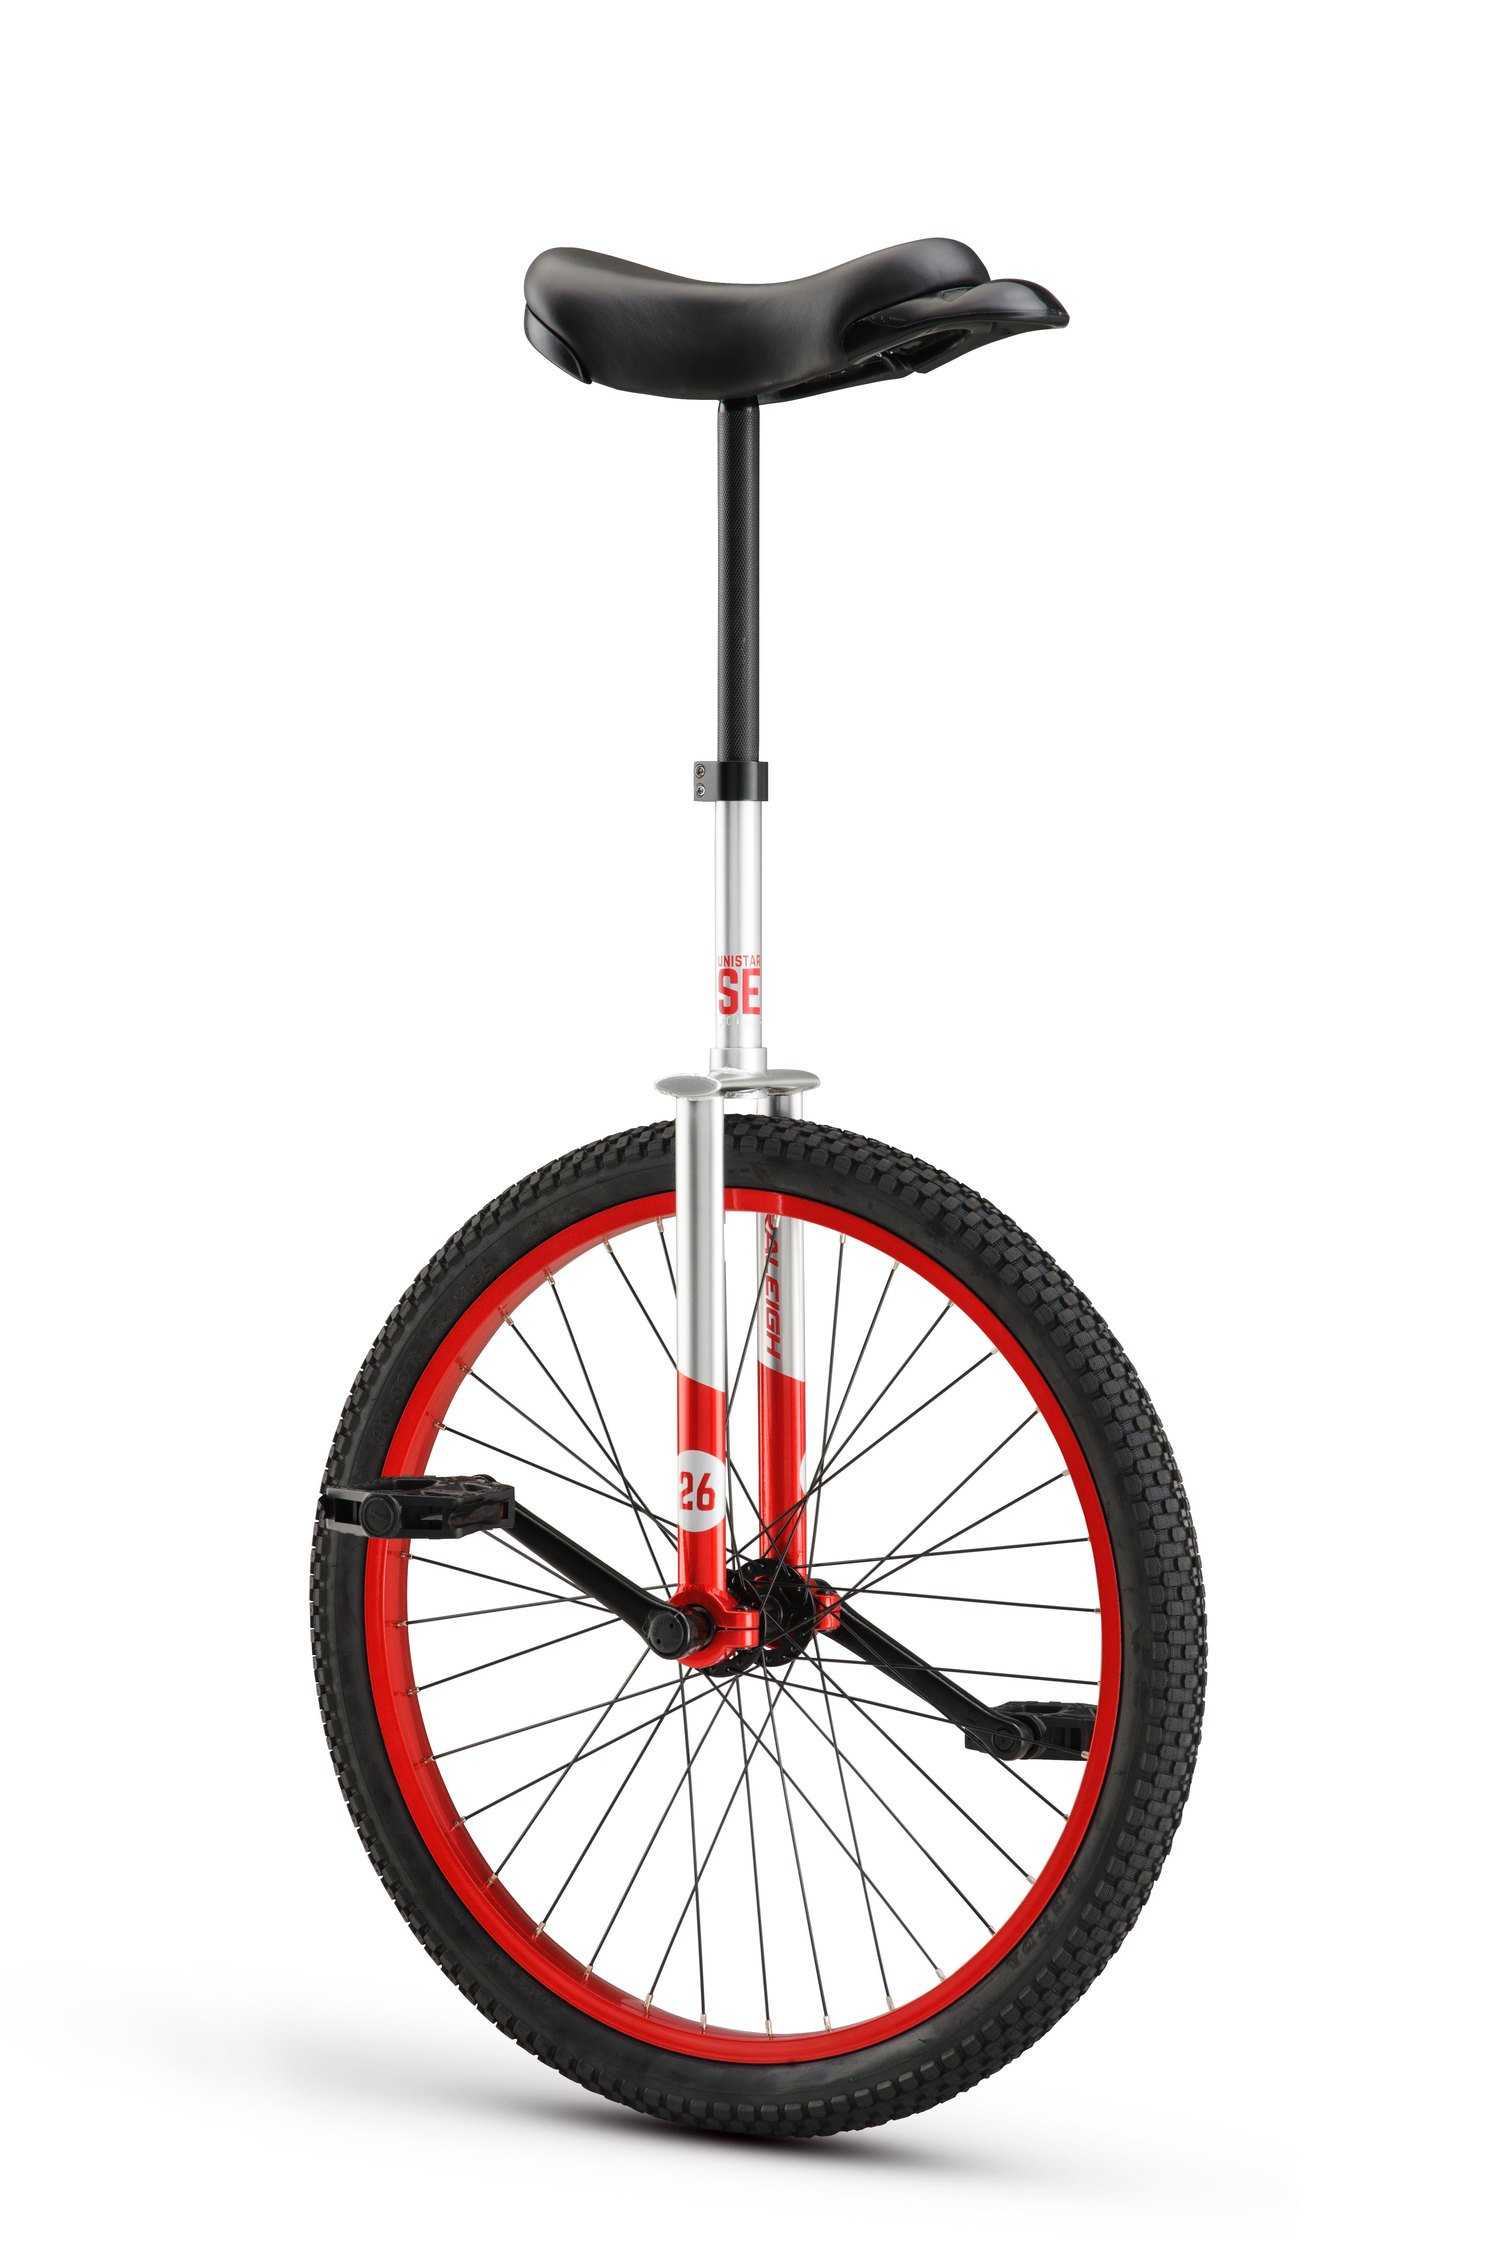 RALEIGH Unistar SE 26, 26inch Wheel Unicycle, Red by RALEIGH